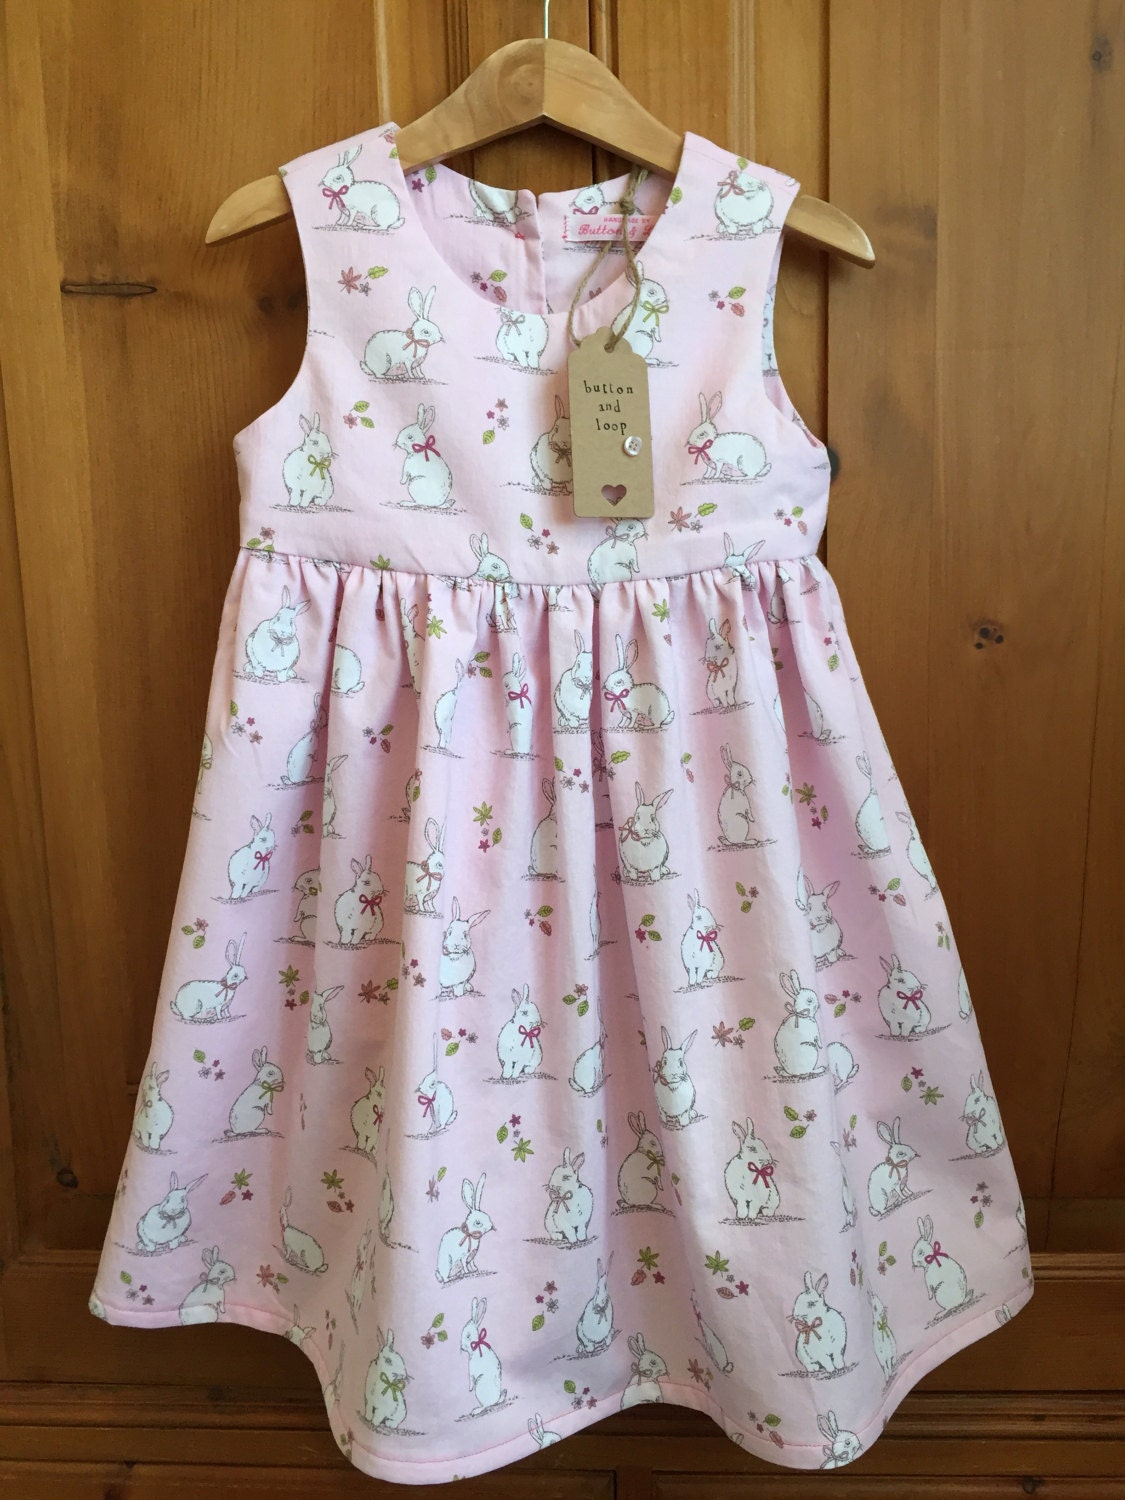 dresses girls dresses girls easter dress girls party dress occasion dres easter dress baby dresses childrens clothing girls clothing